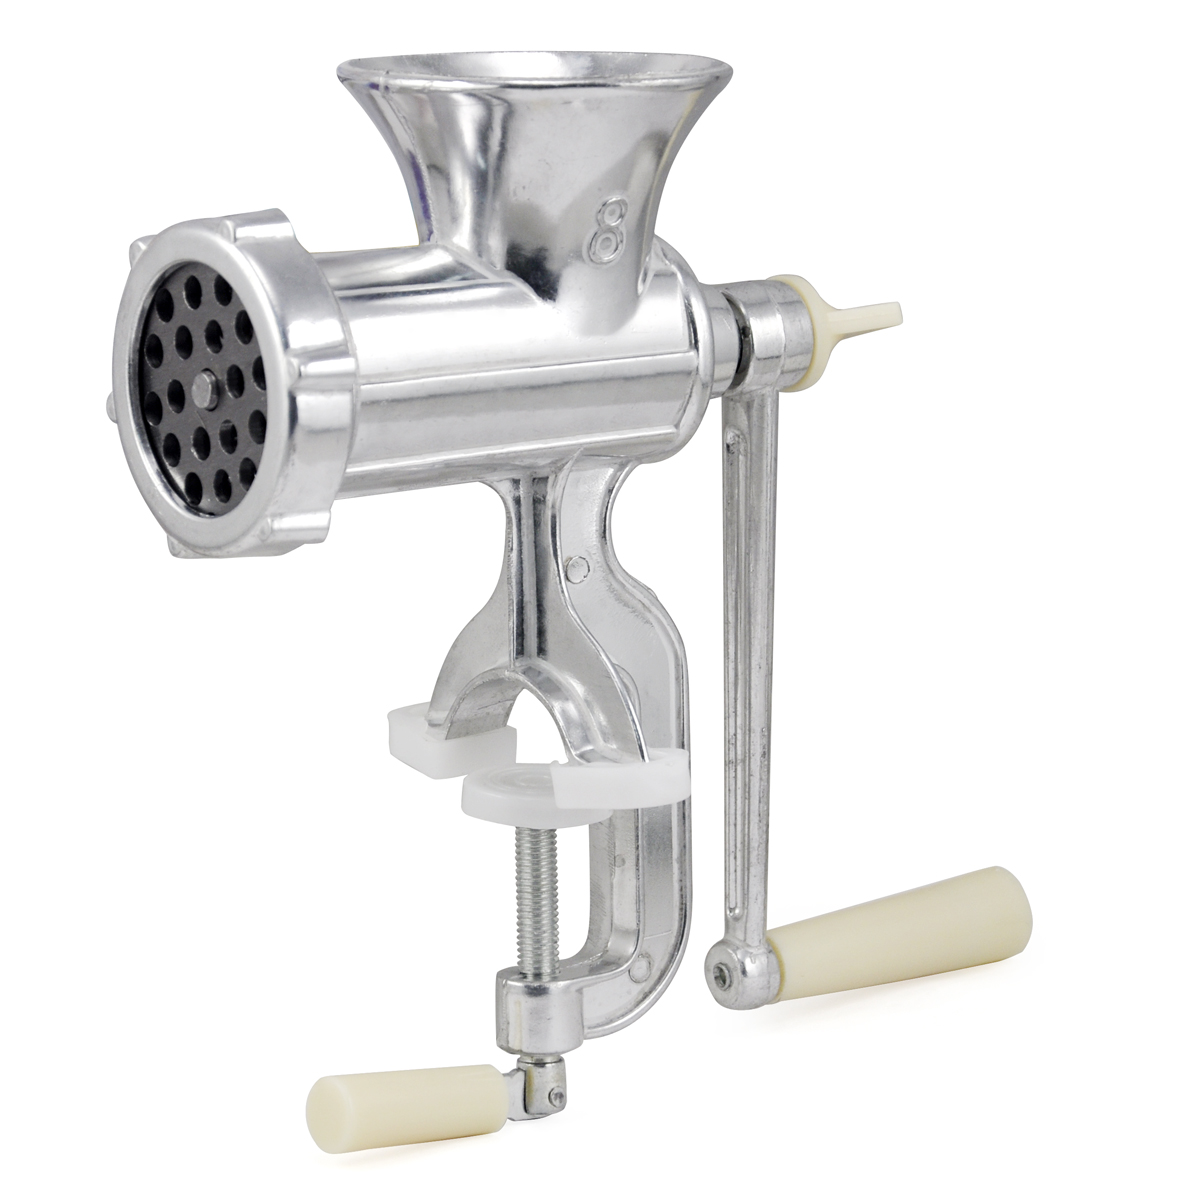 Hand Operated Kitchen Clamp Grinder Meat Mincer Maker Beef